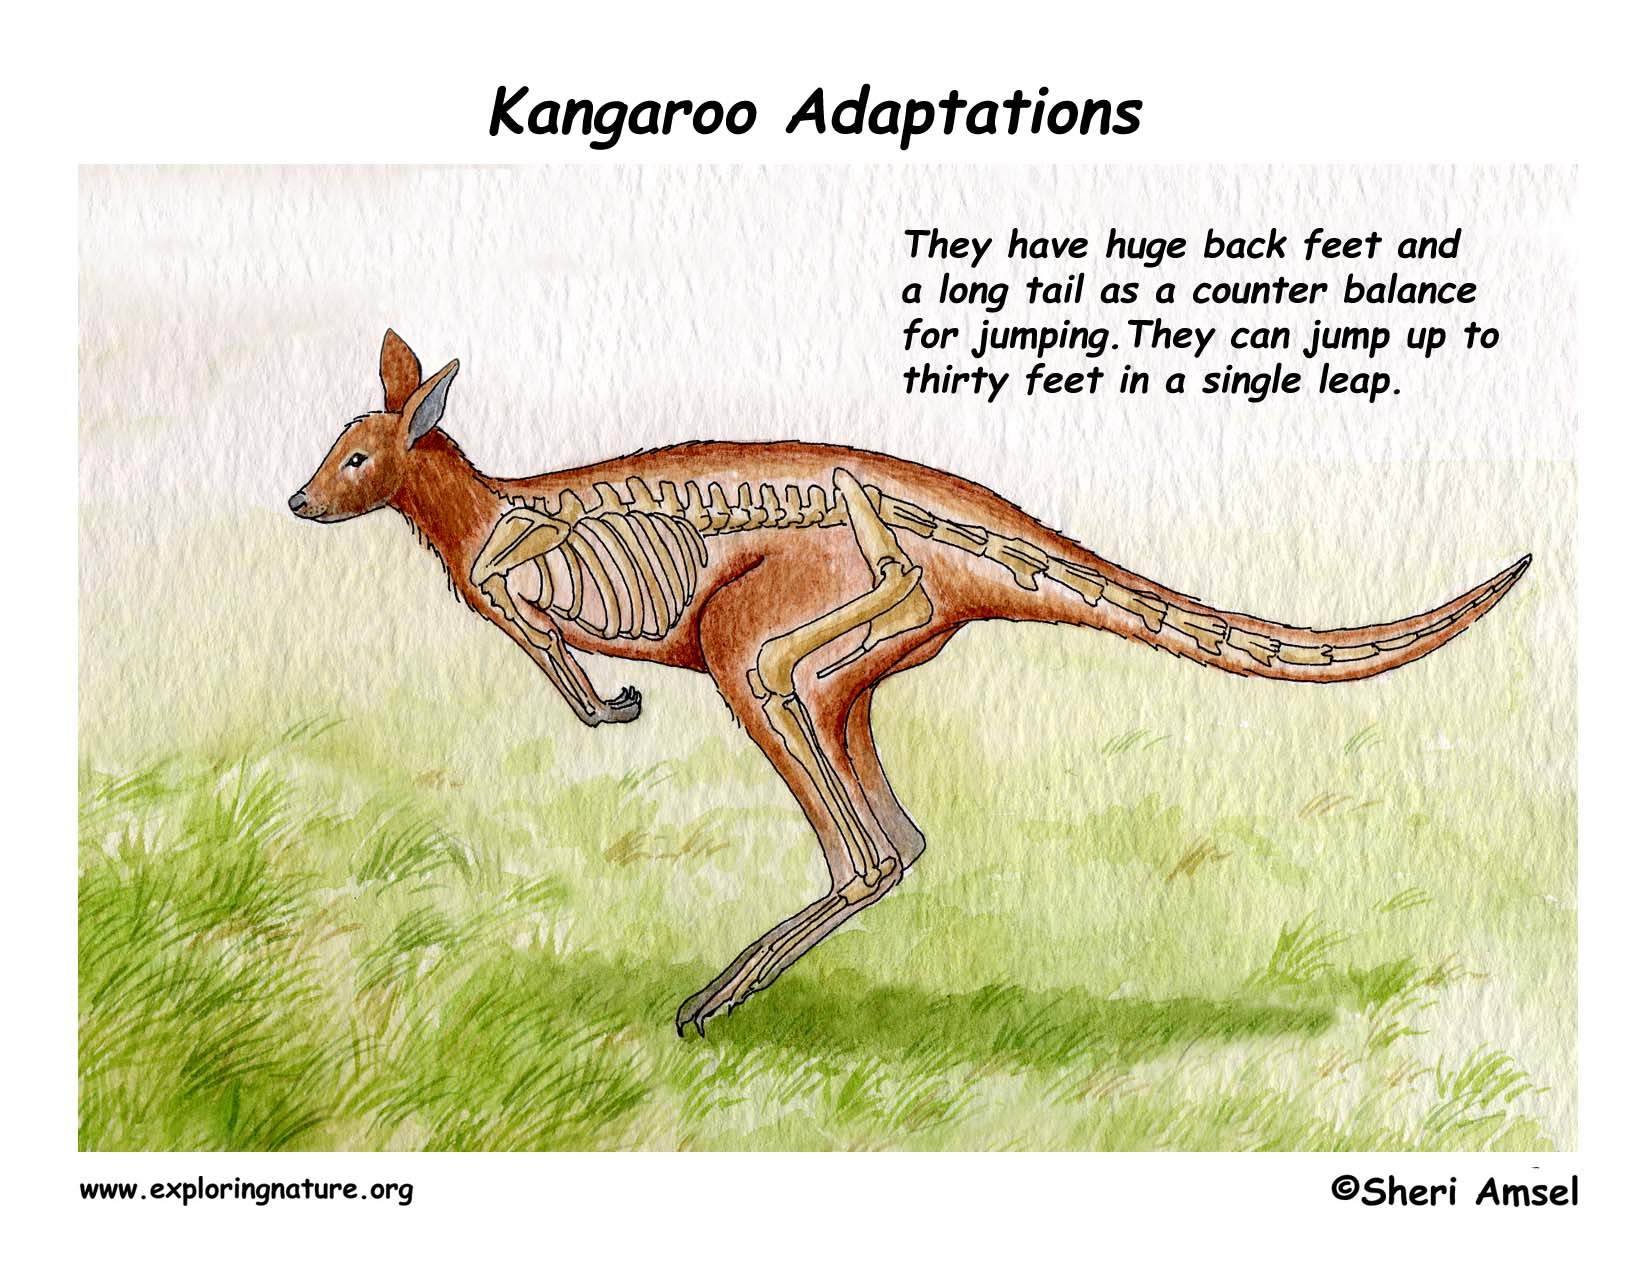 Adaptations of the Kangaroo